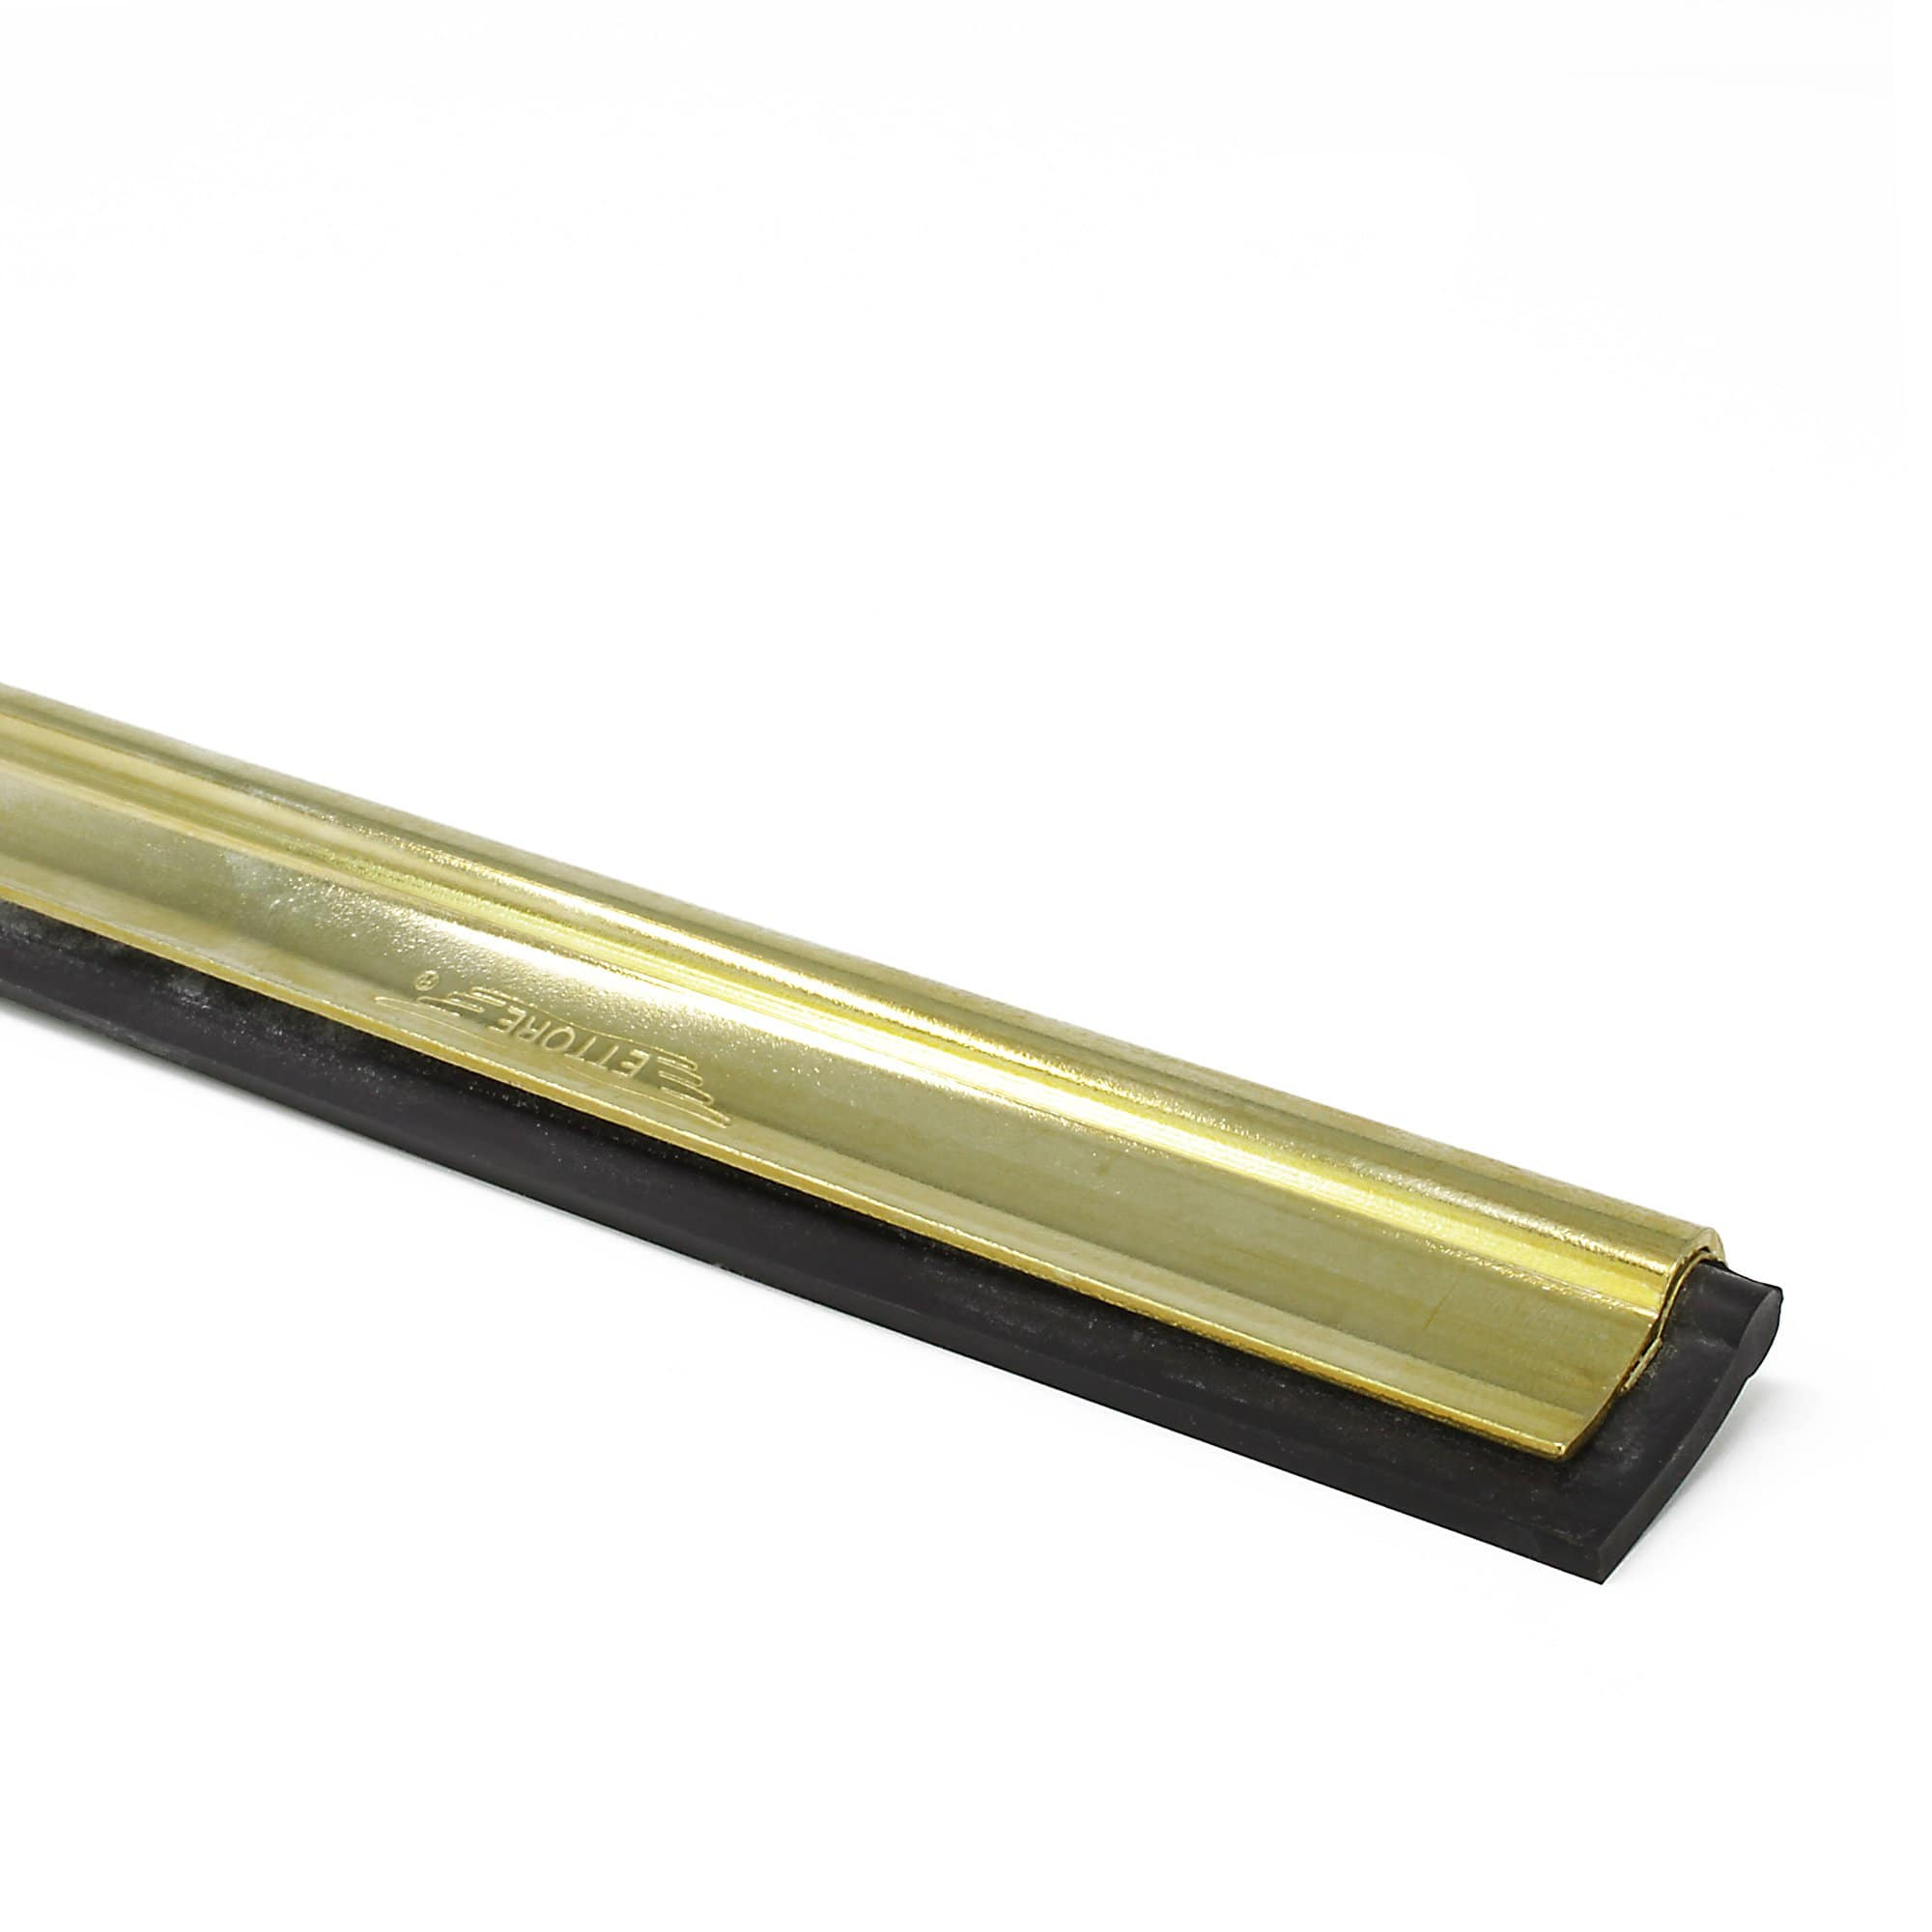 Pack of 6 Ettore 1345 Ledge-Eze Squeegee Handle